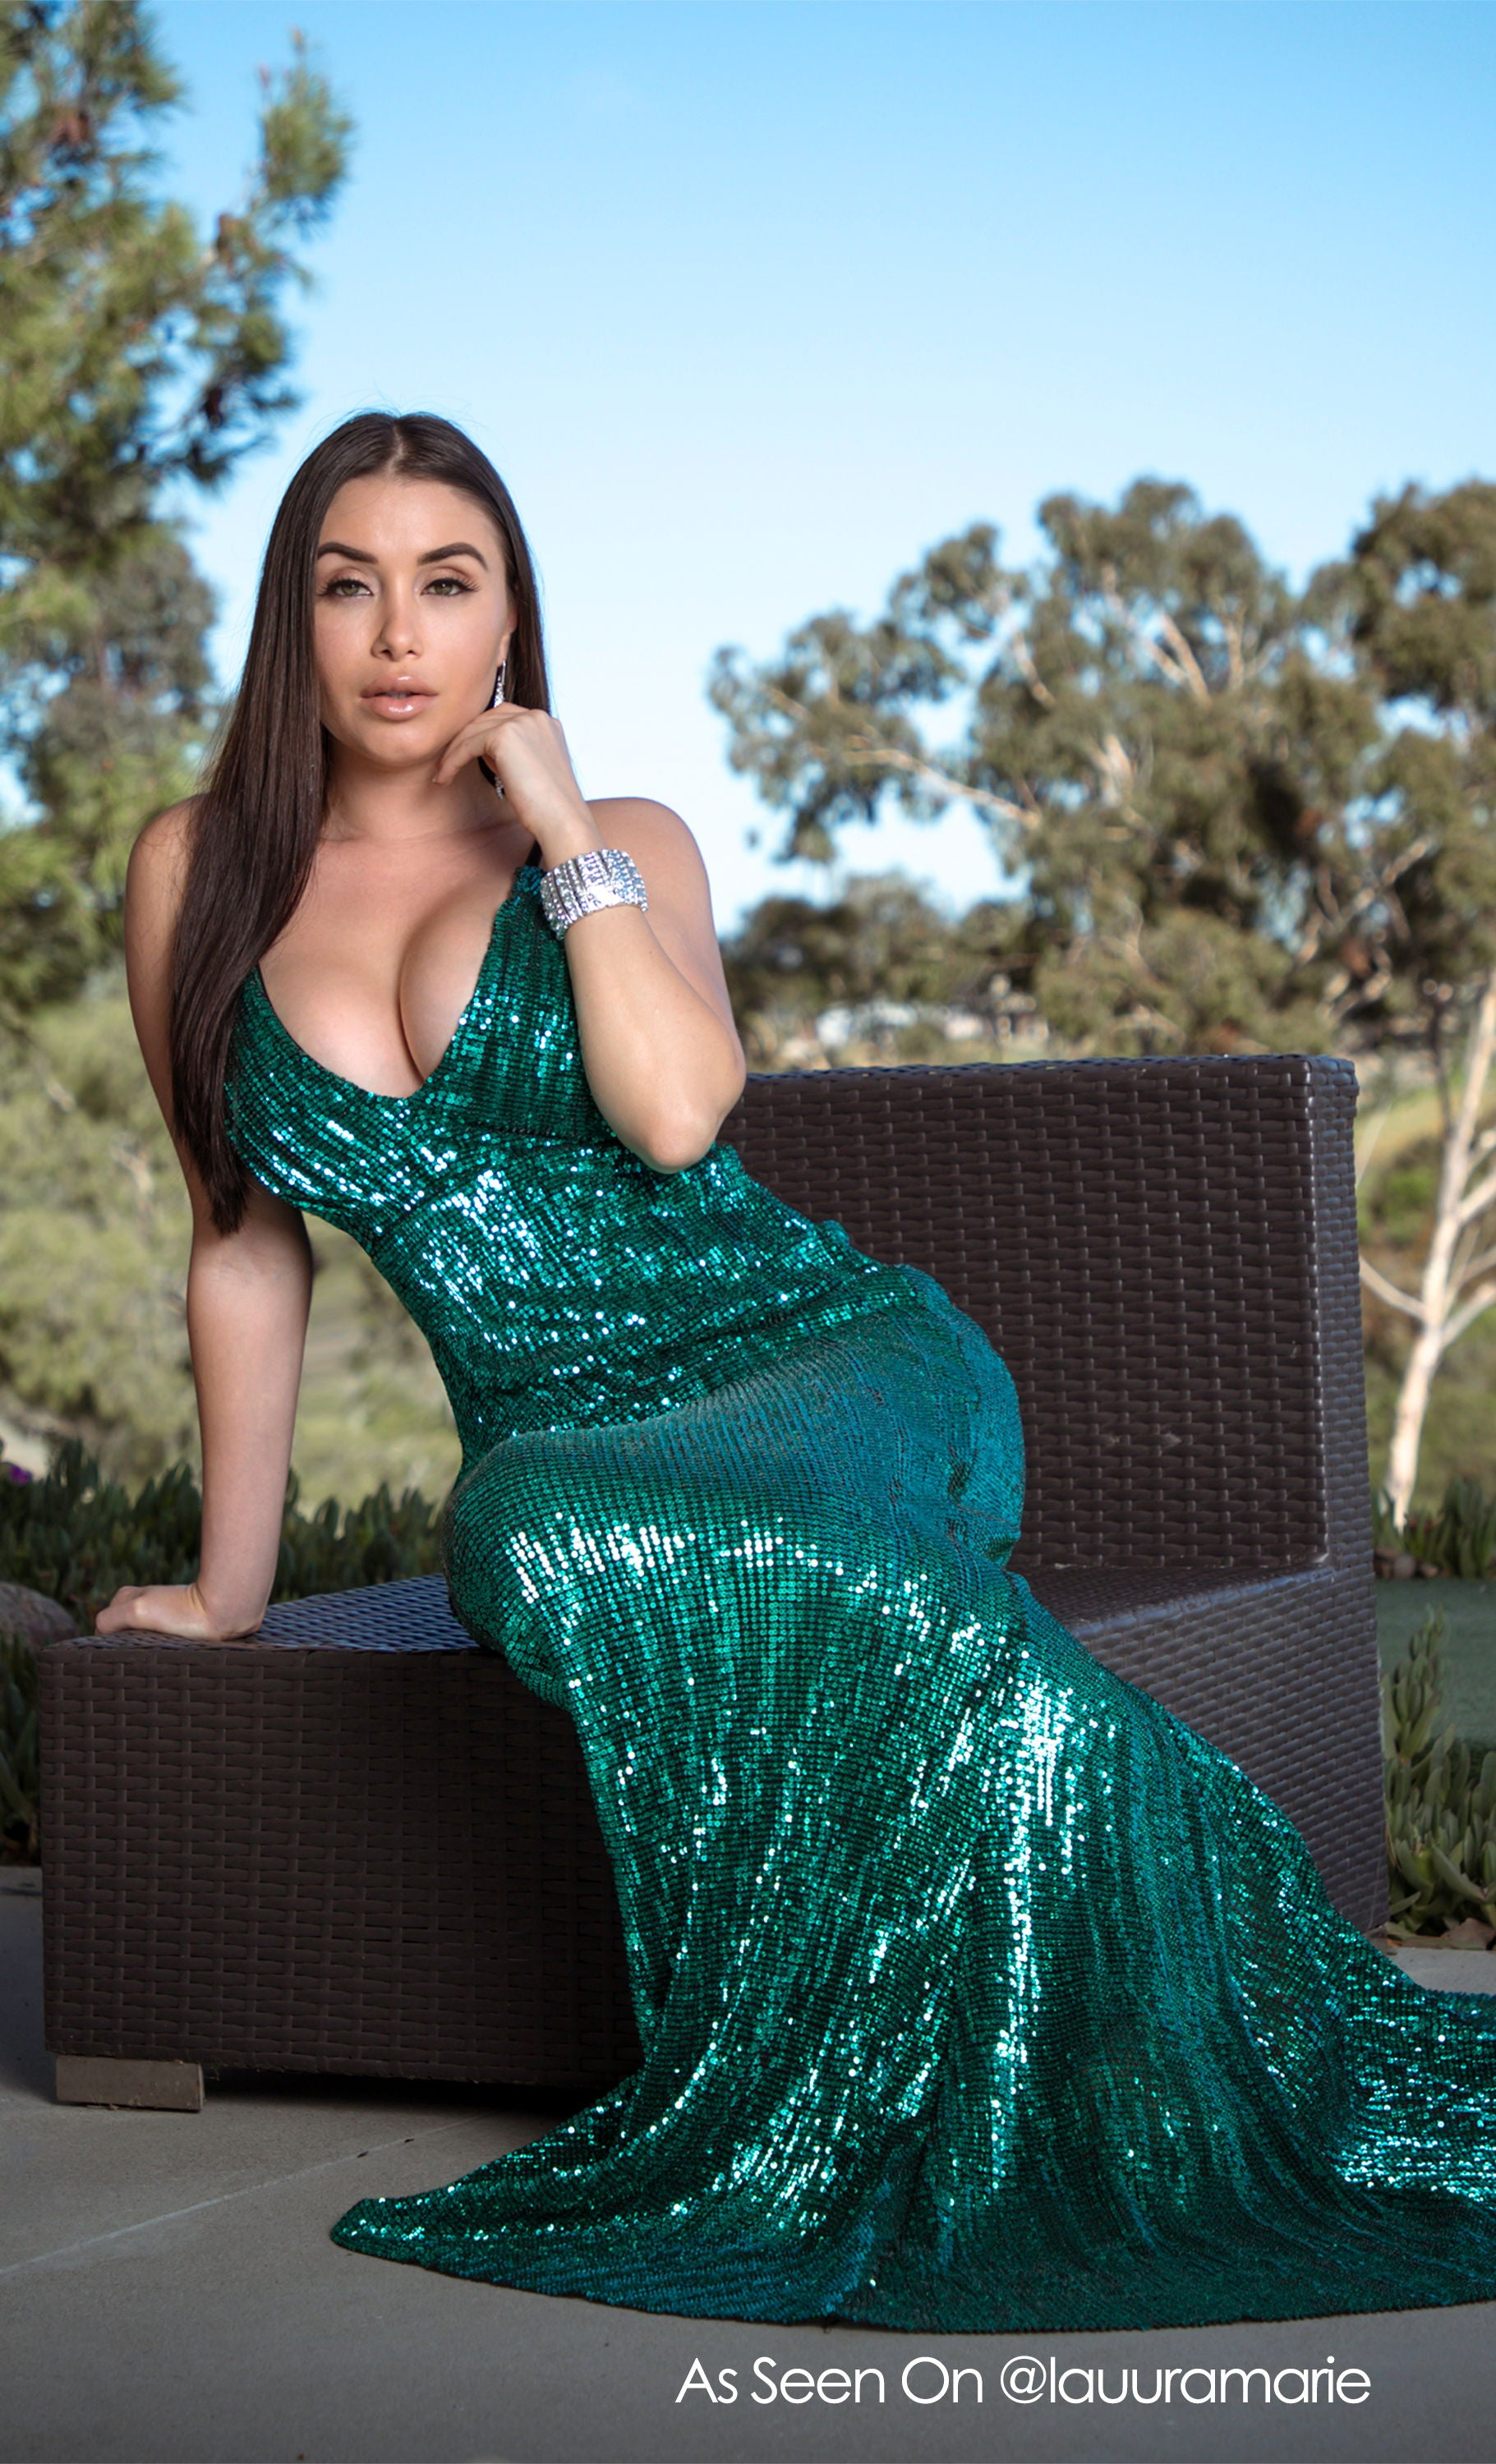 Green Light Emerald Sequin Sleeveless Spaghetti Strap Plunge V Neck Backless Mermaid Gown Maxi Dress